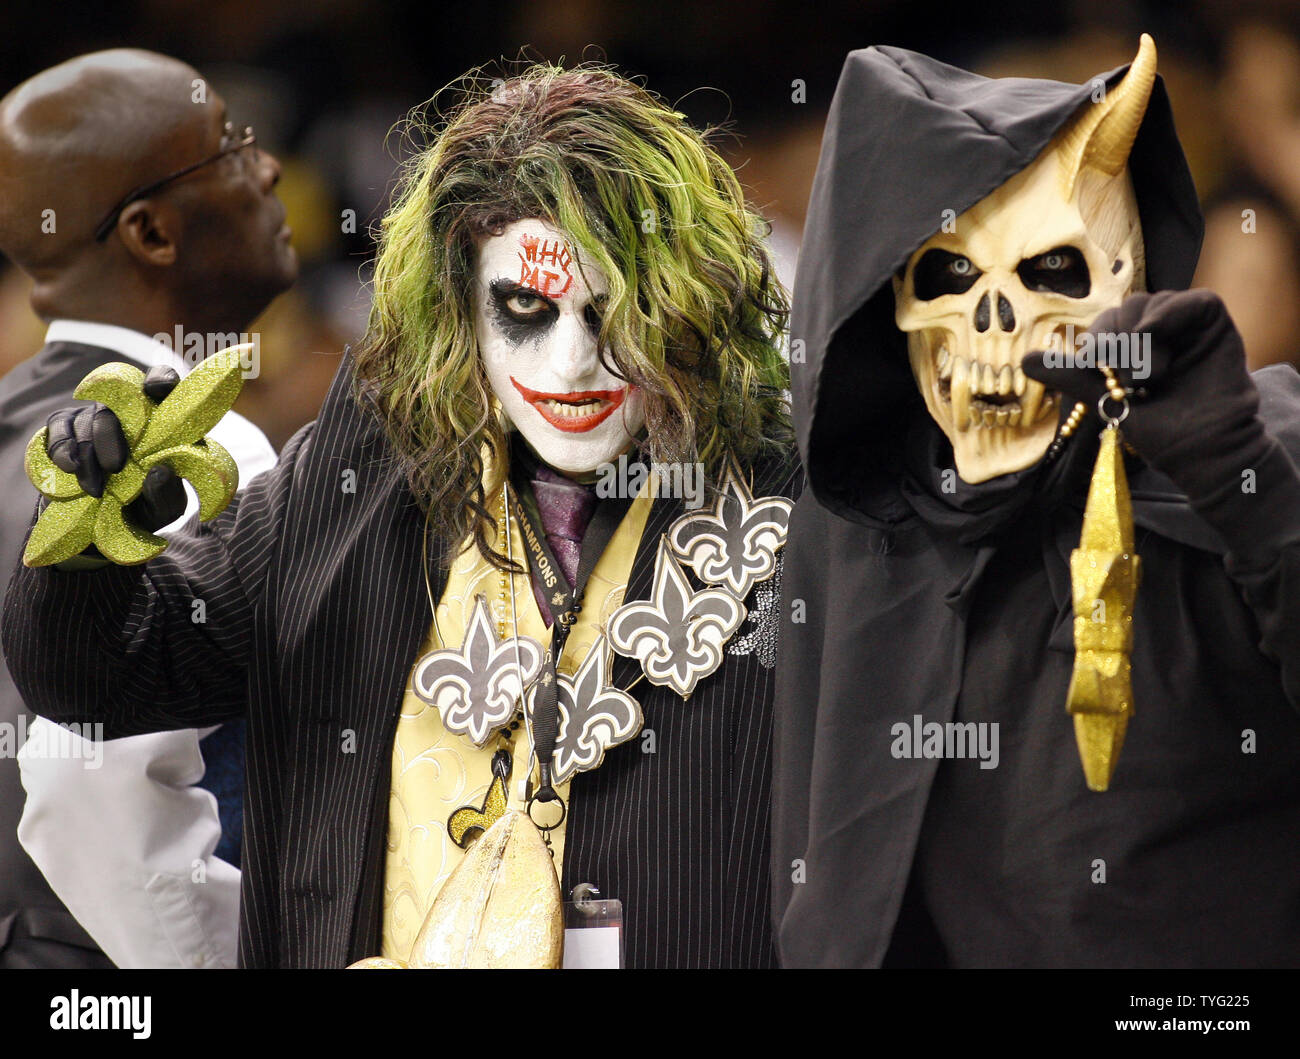 New Orleans Saints Fans Costume For Halloween During The